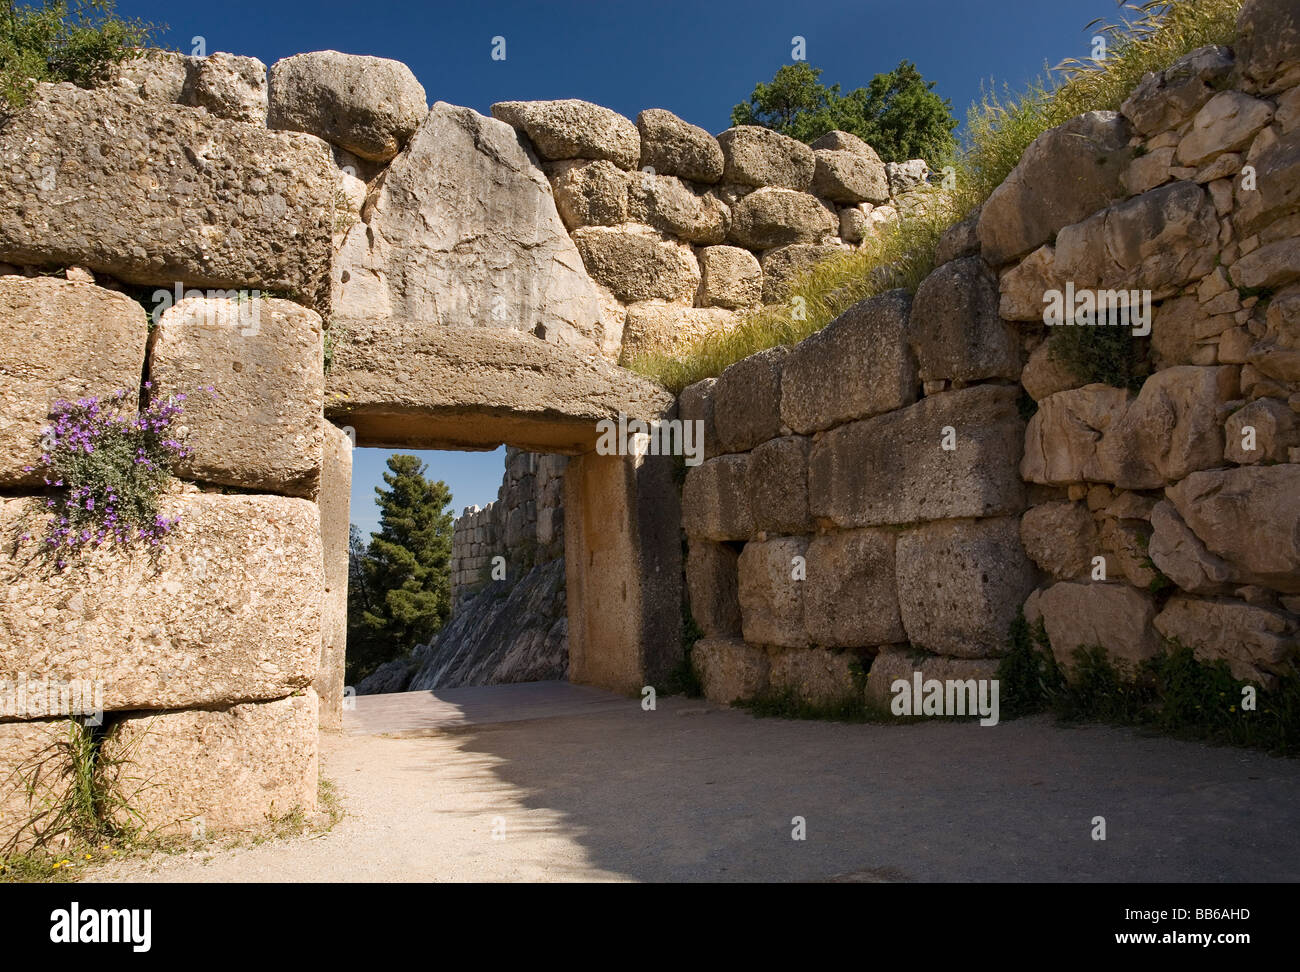 Inside Of The Lion Gate Of Ancient Mycenae In Argolis Of